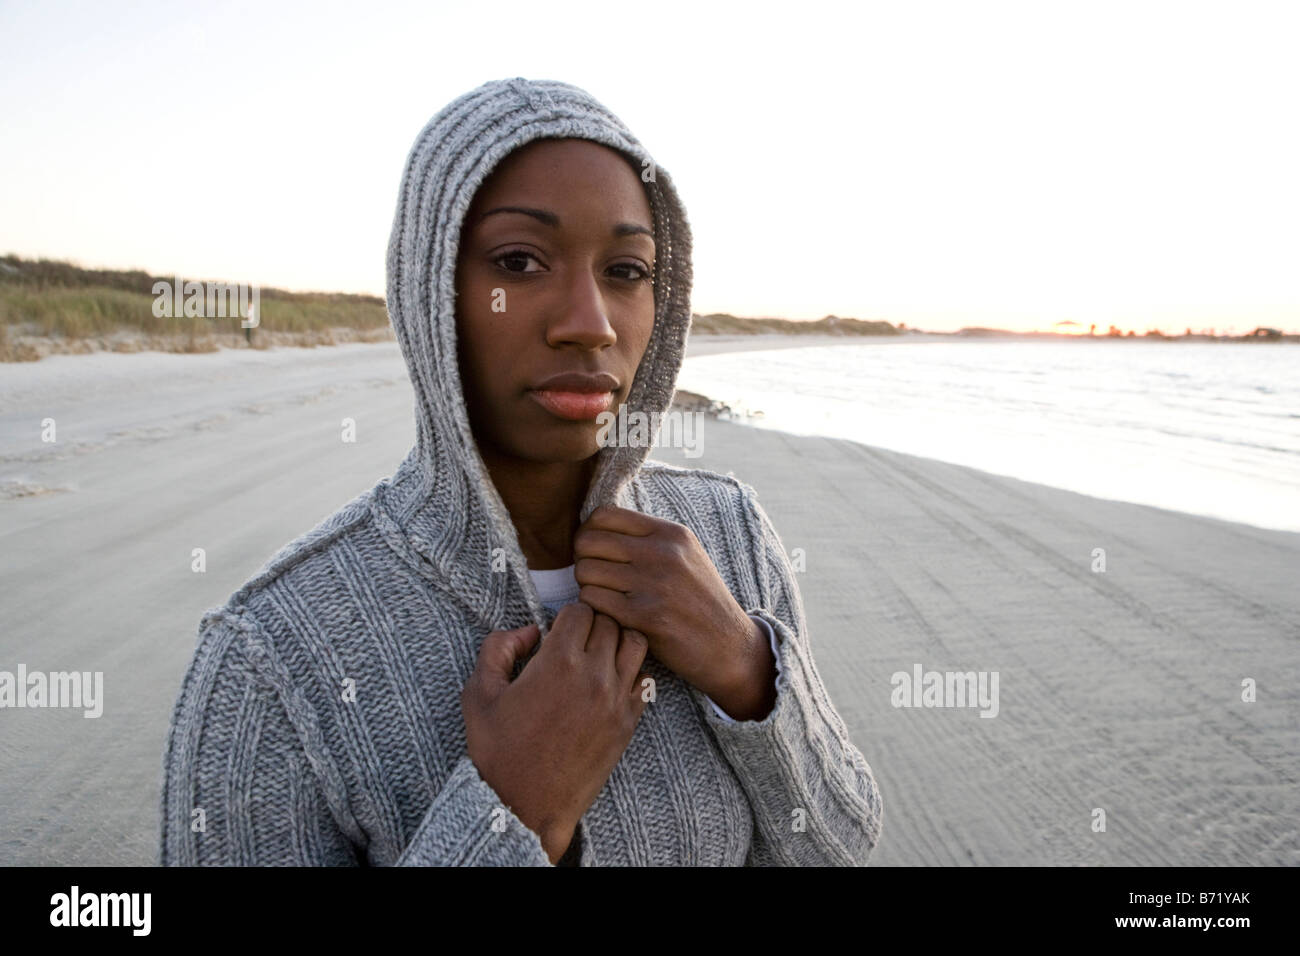 Young African American woman wearing hooded top standing at beach - Stock Image